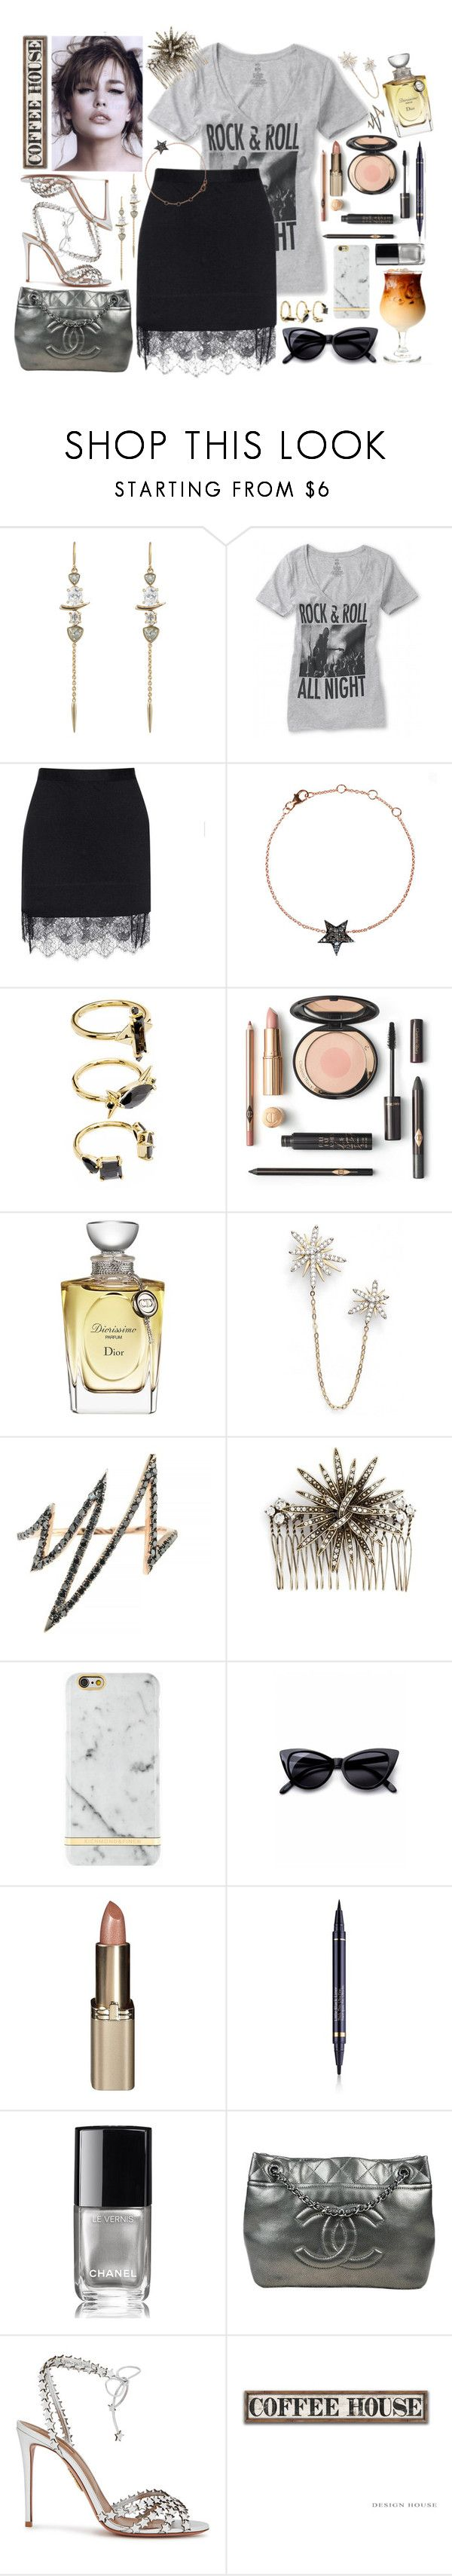 """""""The Heat - The Score"""" by leo8august ❤ liked on Polyvore featuring Alexis Bittar, Carven, Diamond Star, Noir Jewelry, Christian Dior, Nadri, Talia Naomi, Berry, Richmond & Finch and Retrò"""